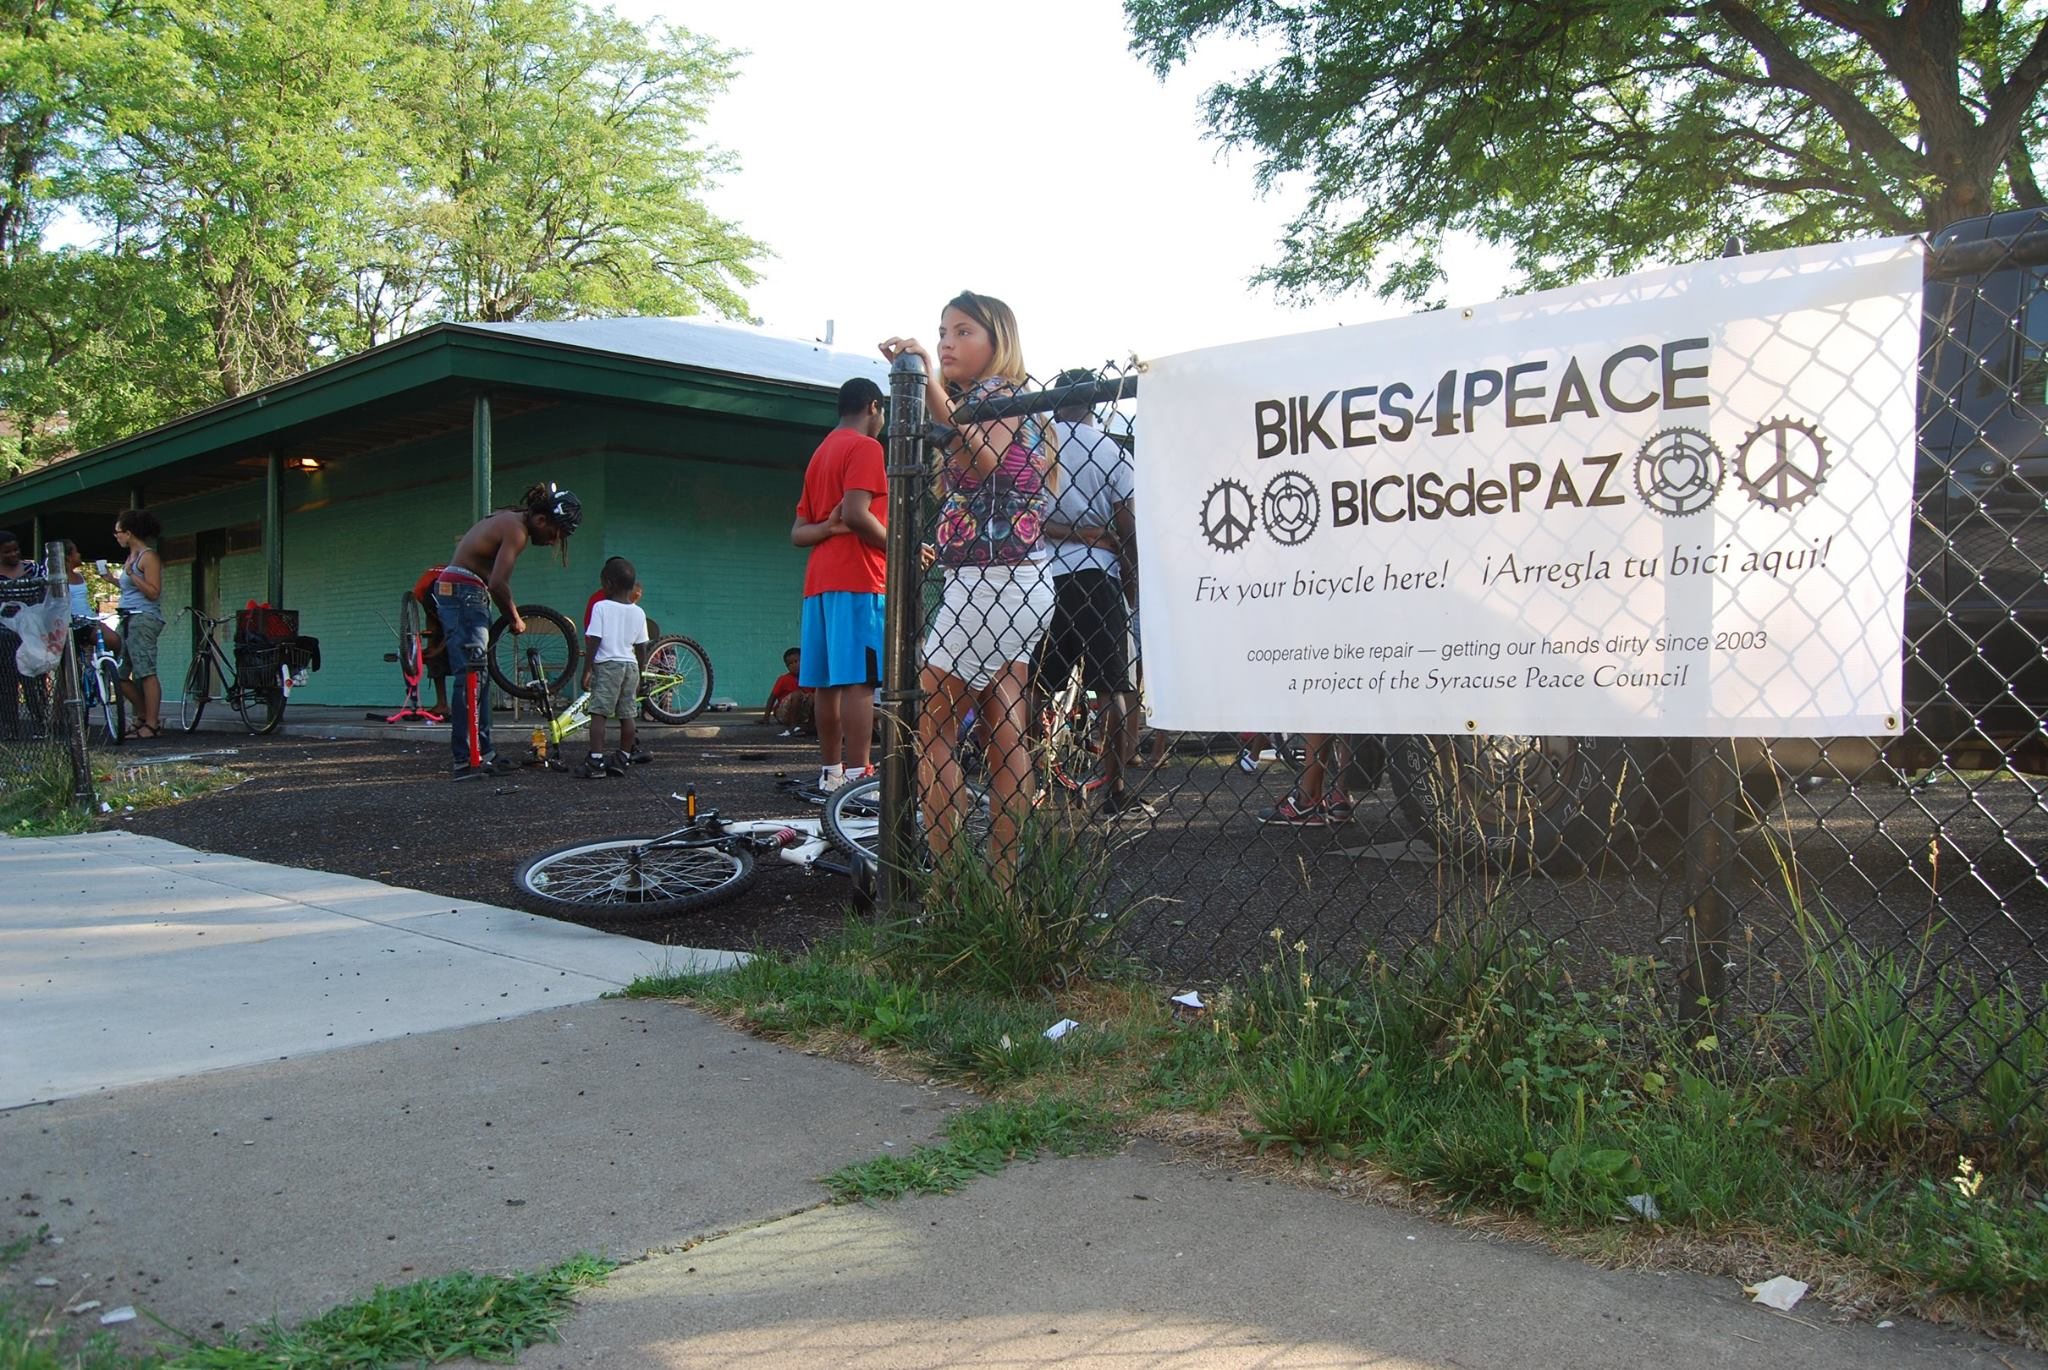 Bikes for Peace